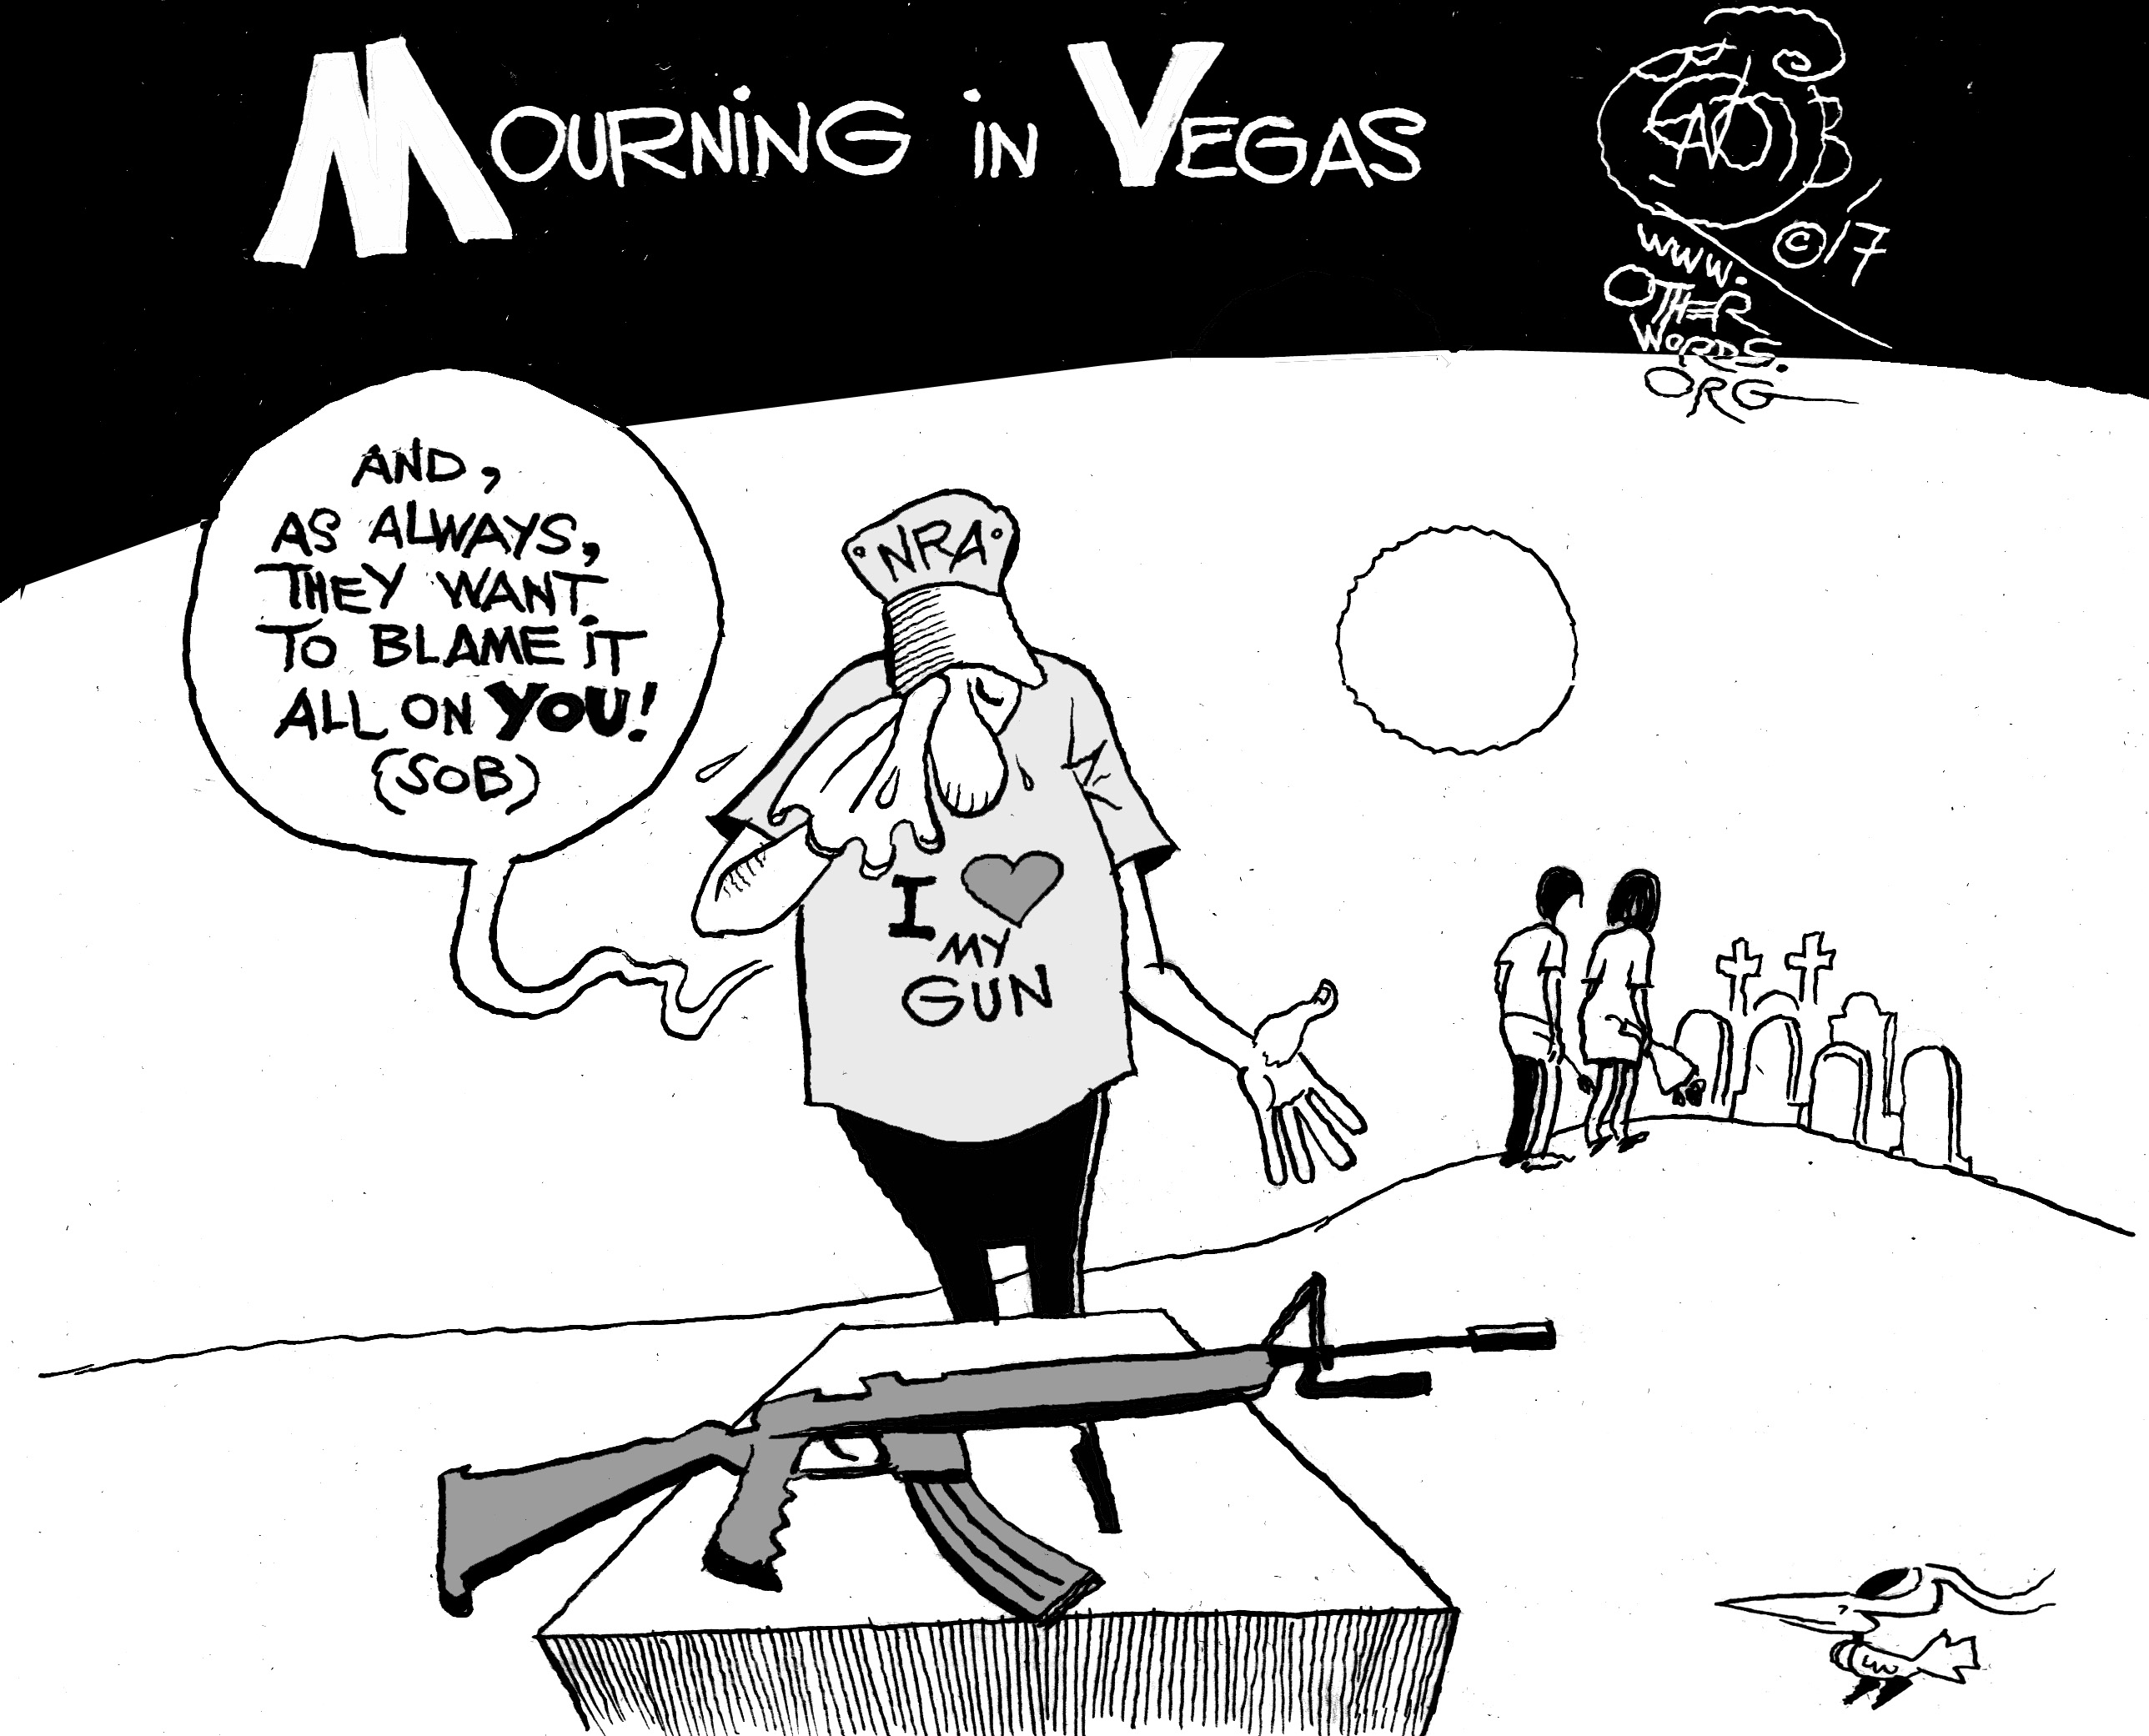 Mourning in Vegas